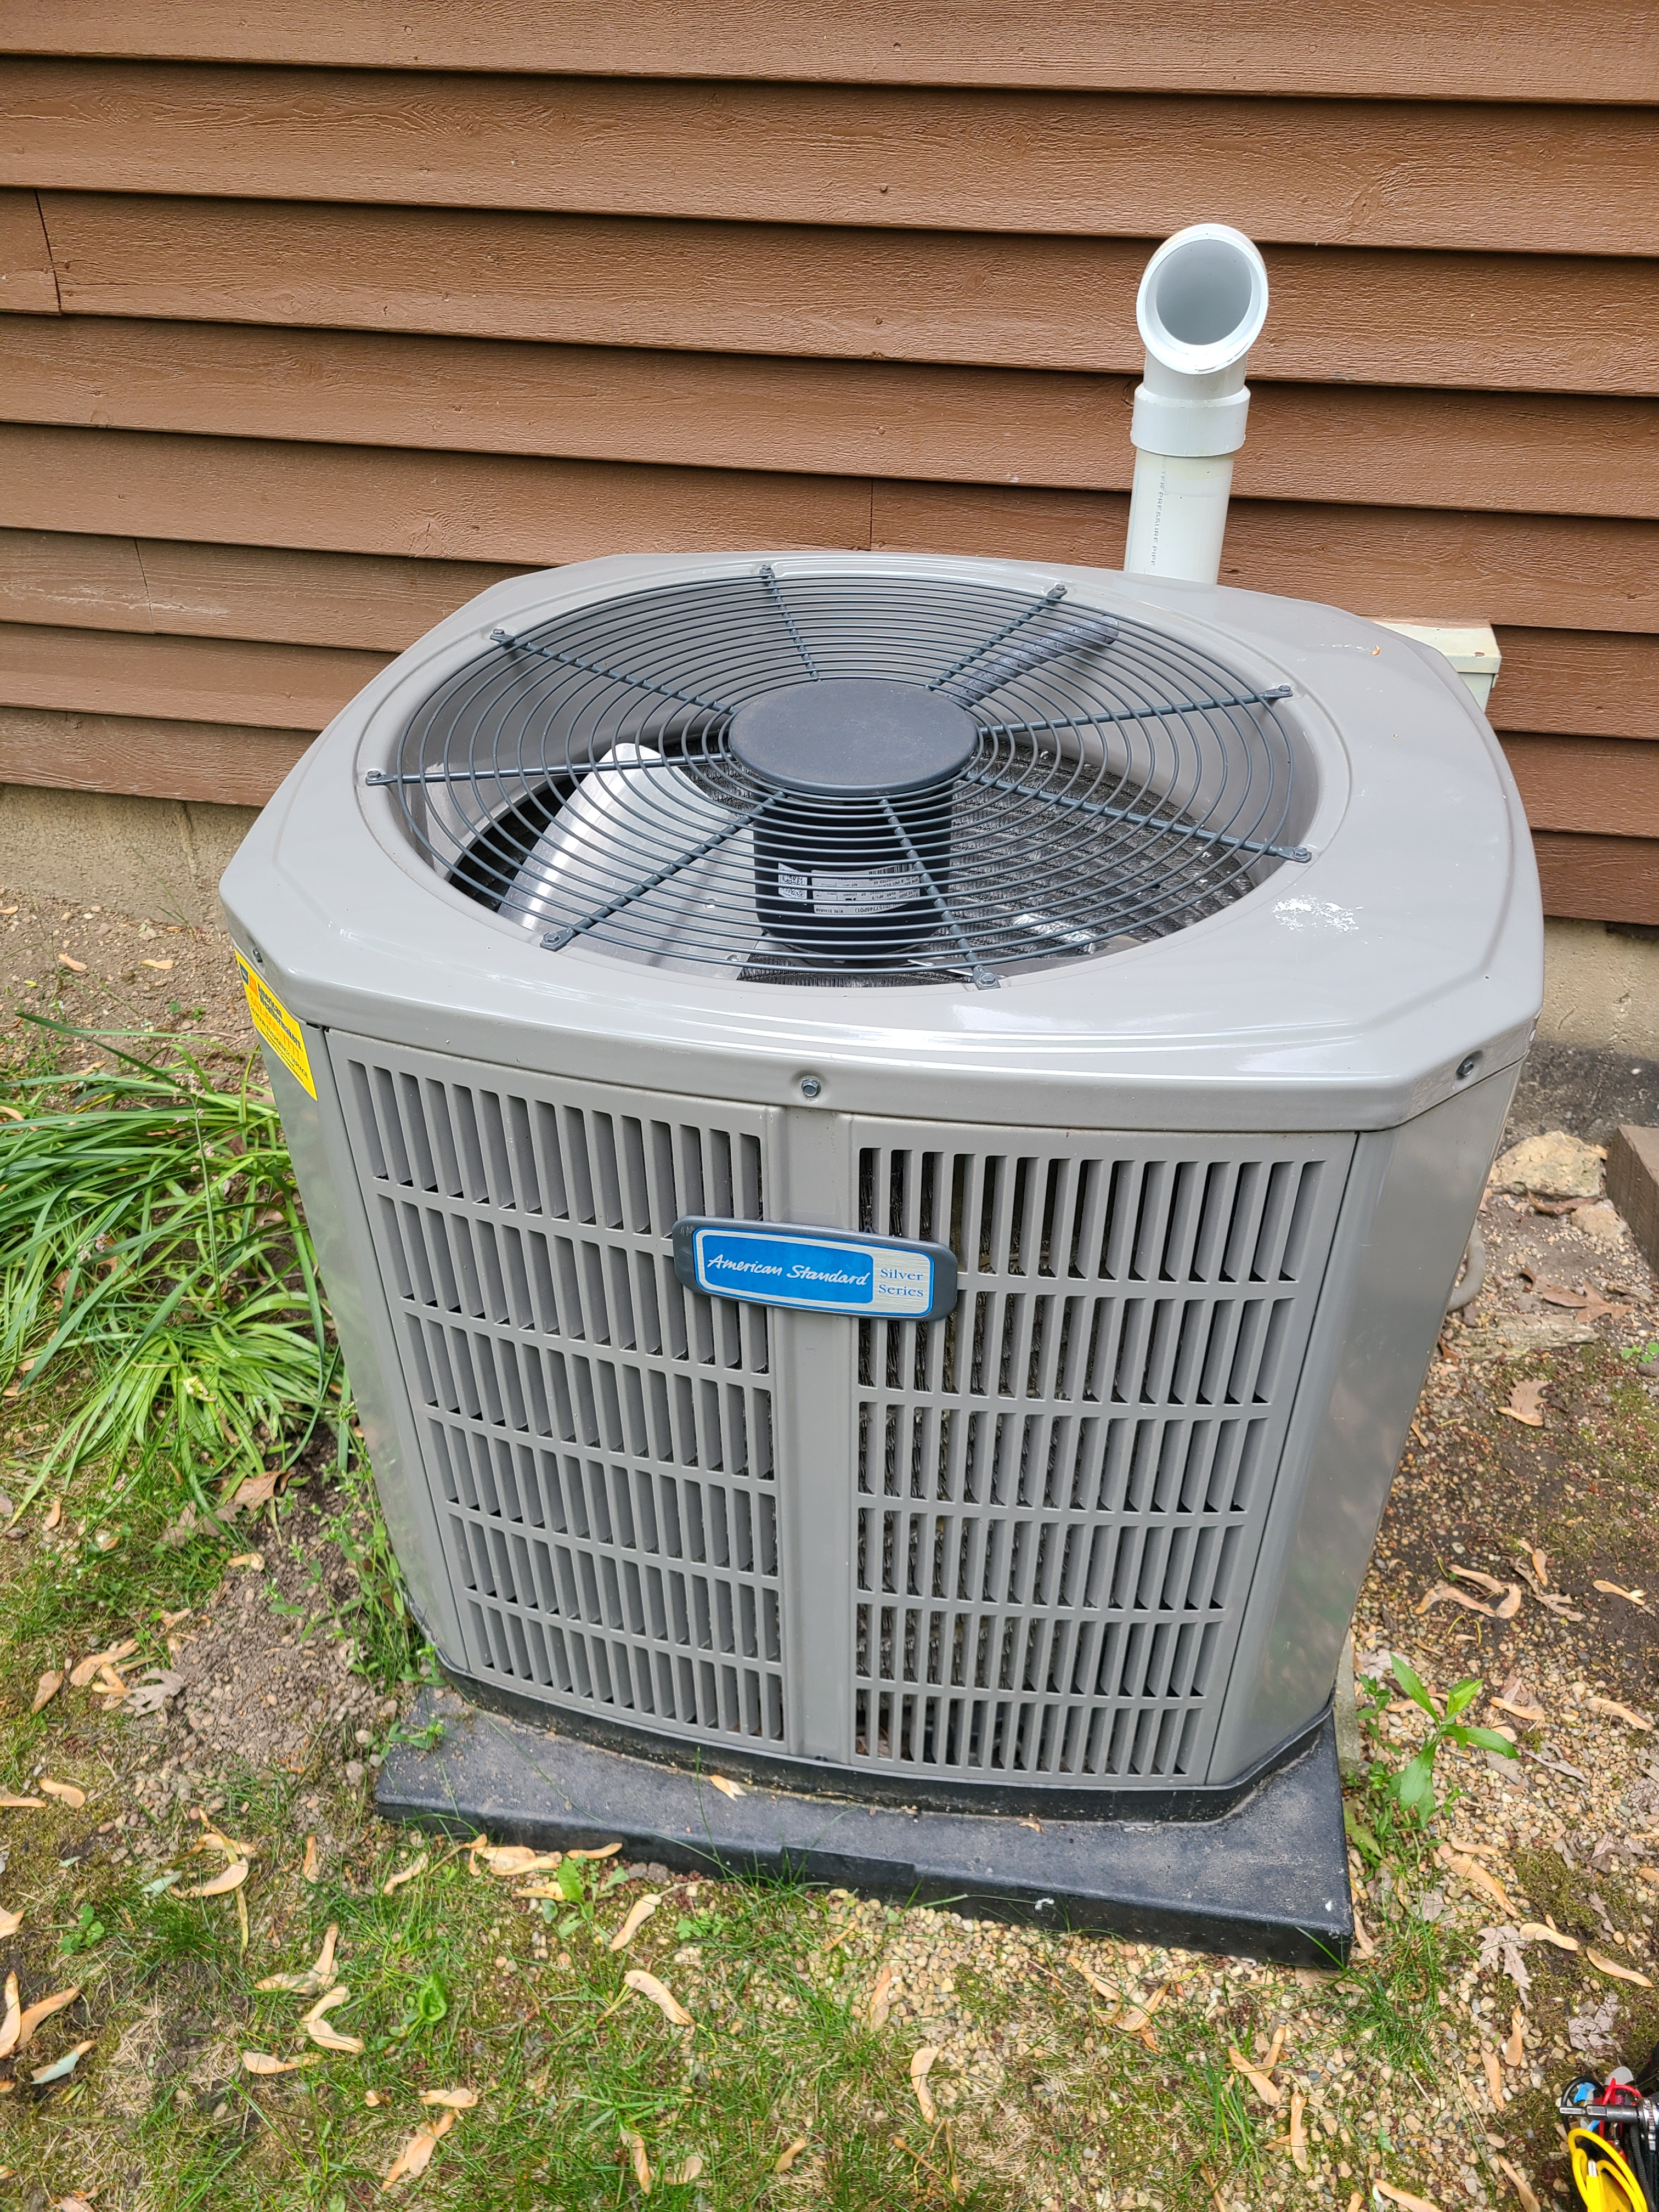 American Standard air conditioning issue diagnosed and repaired